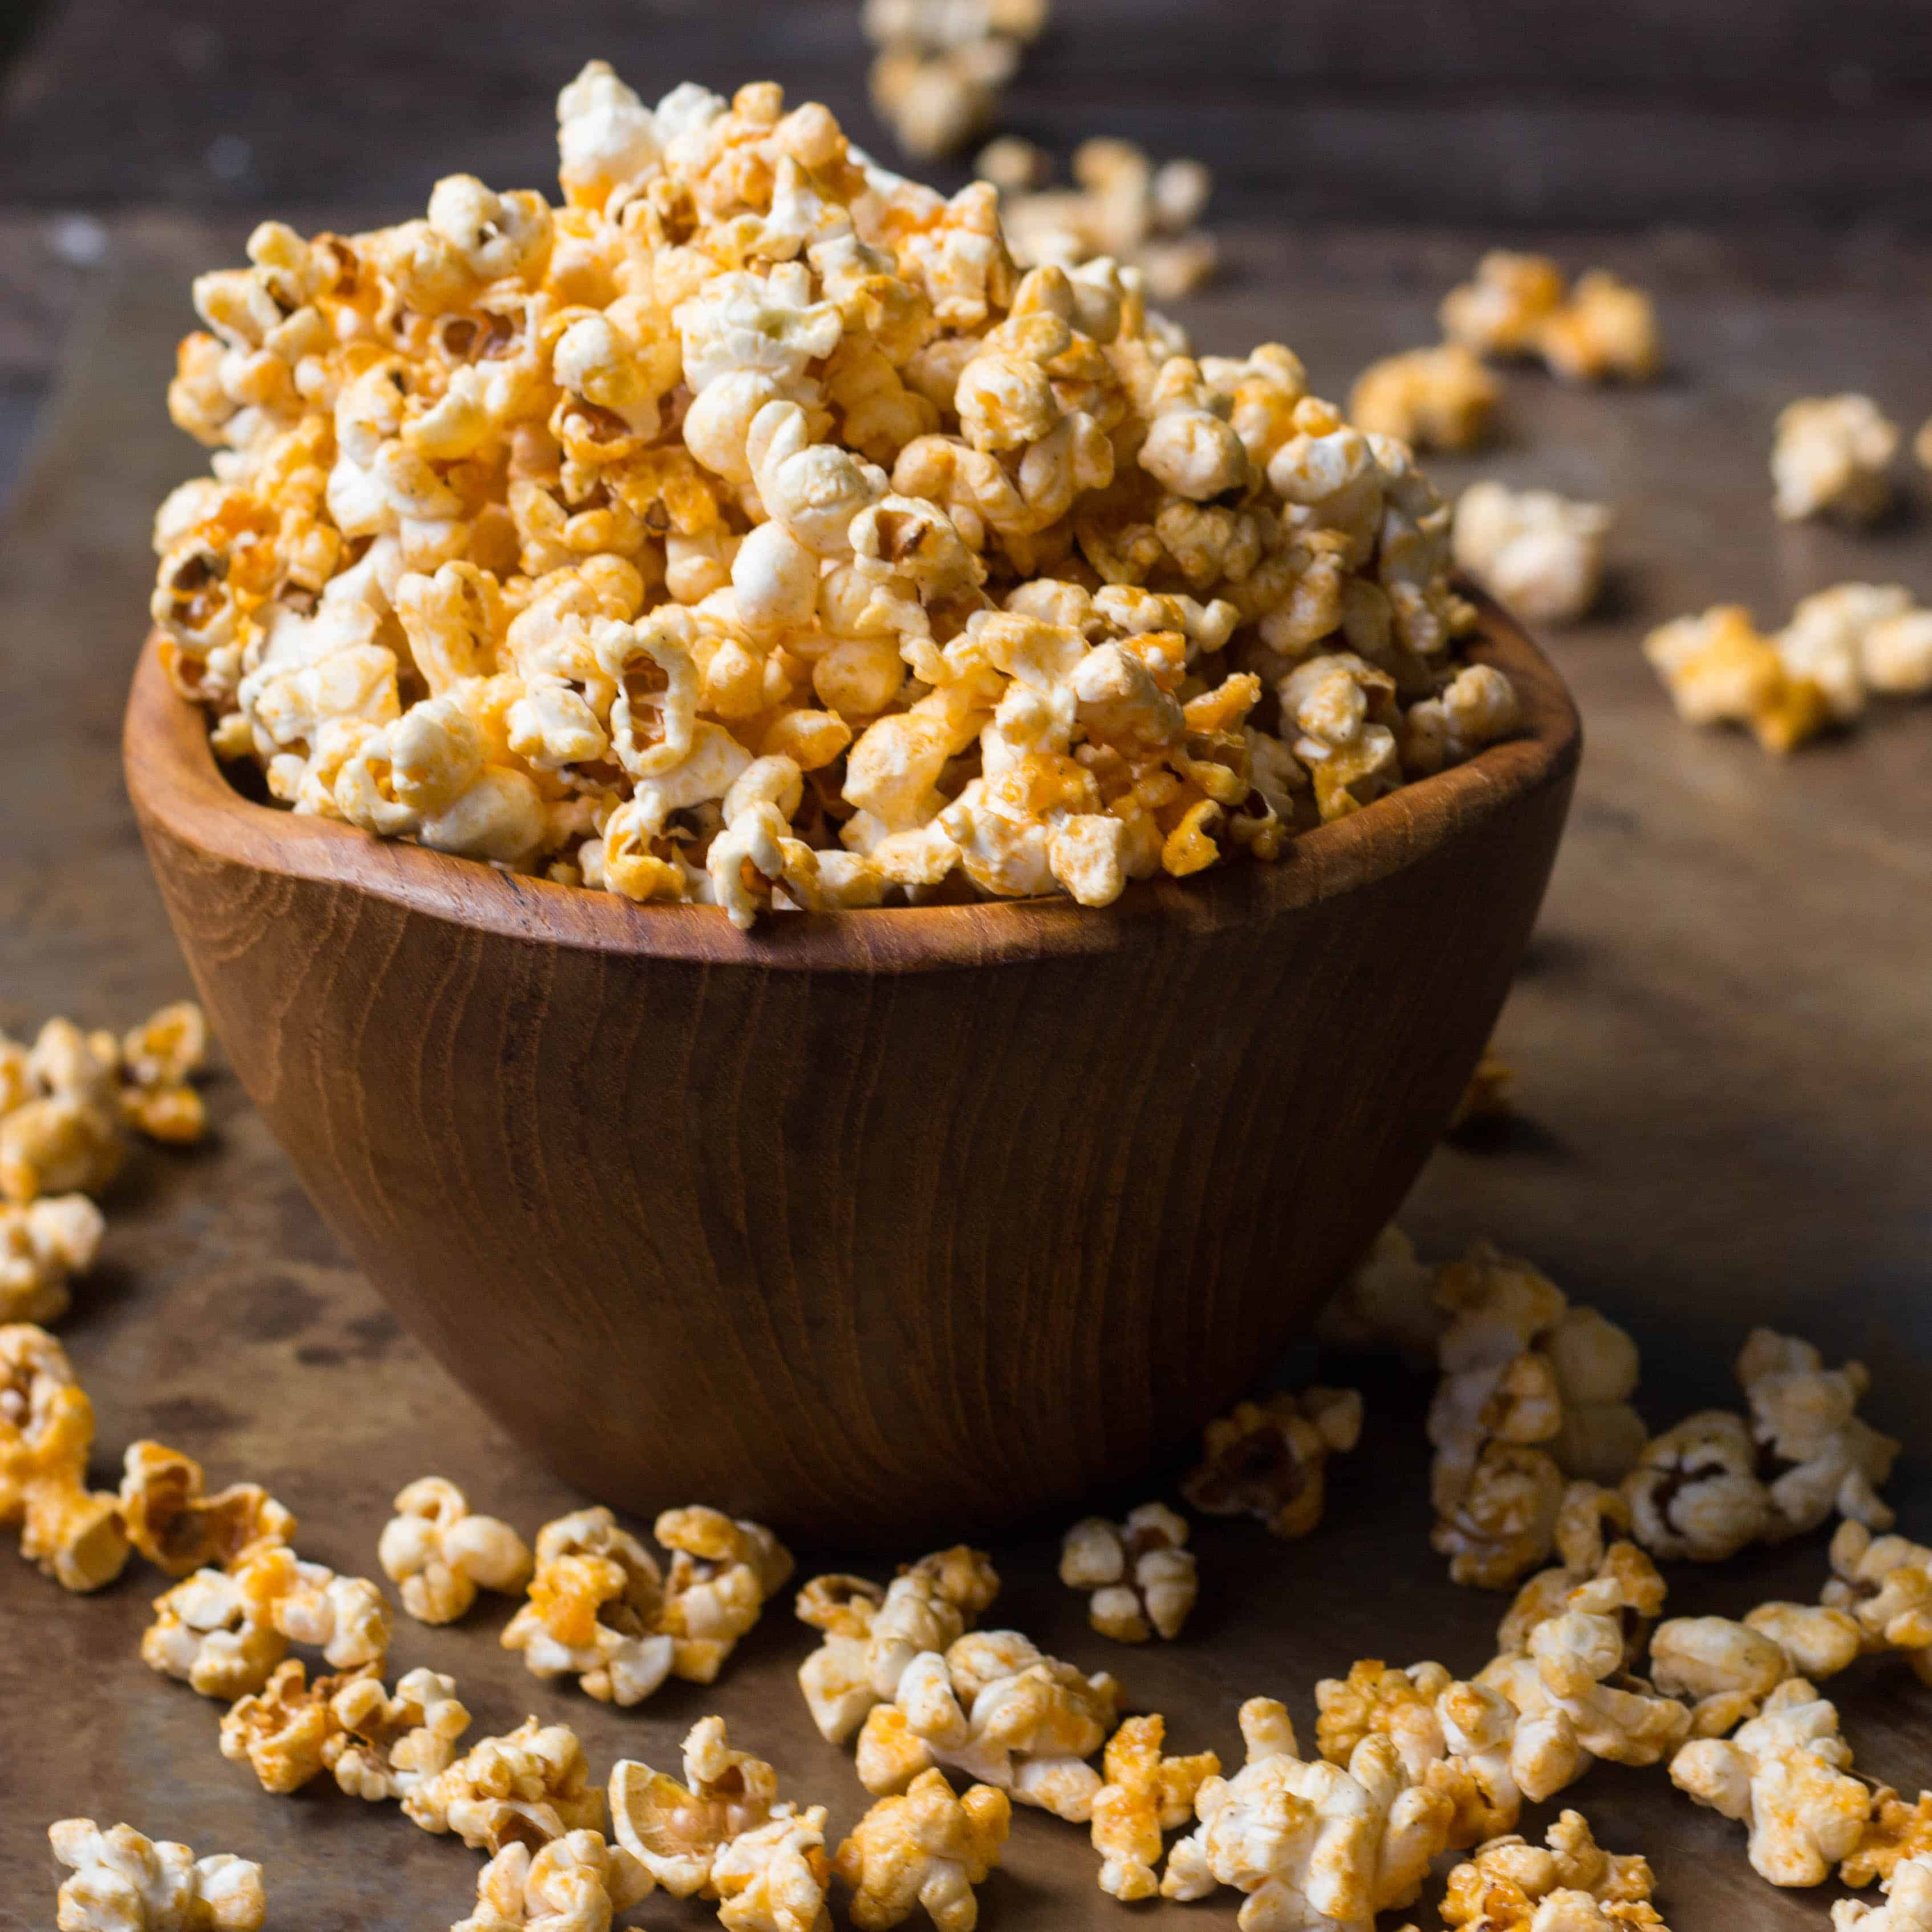 Popped corn in a small wooden bowl.